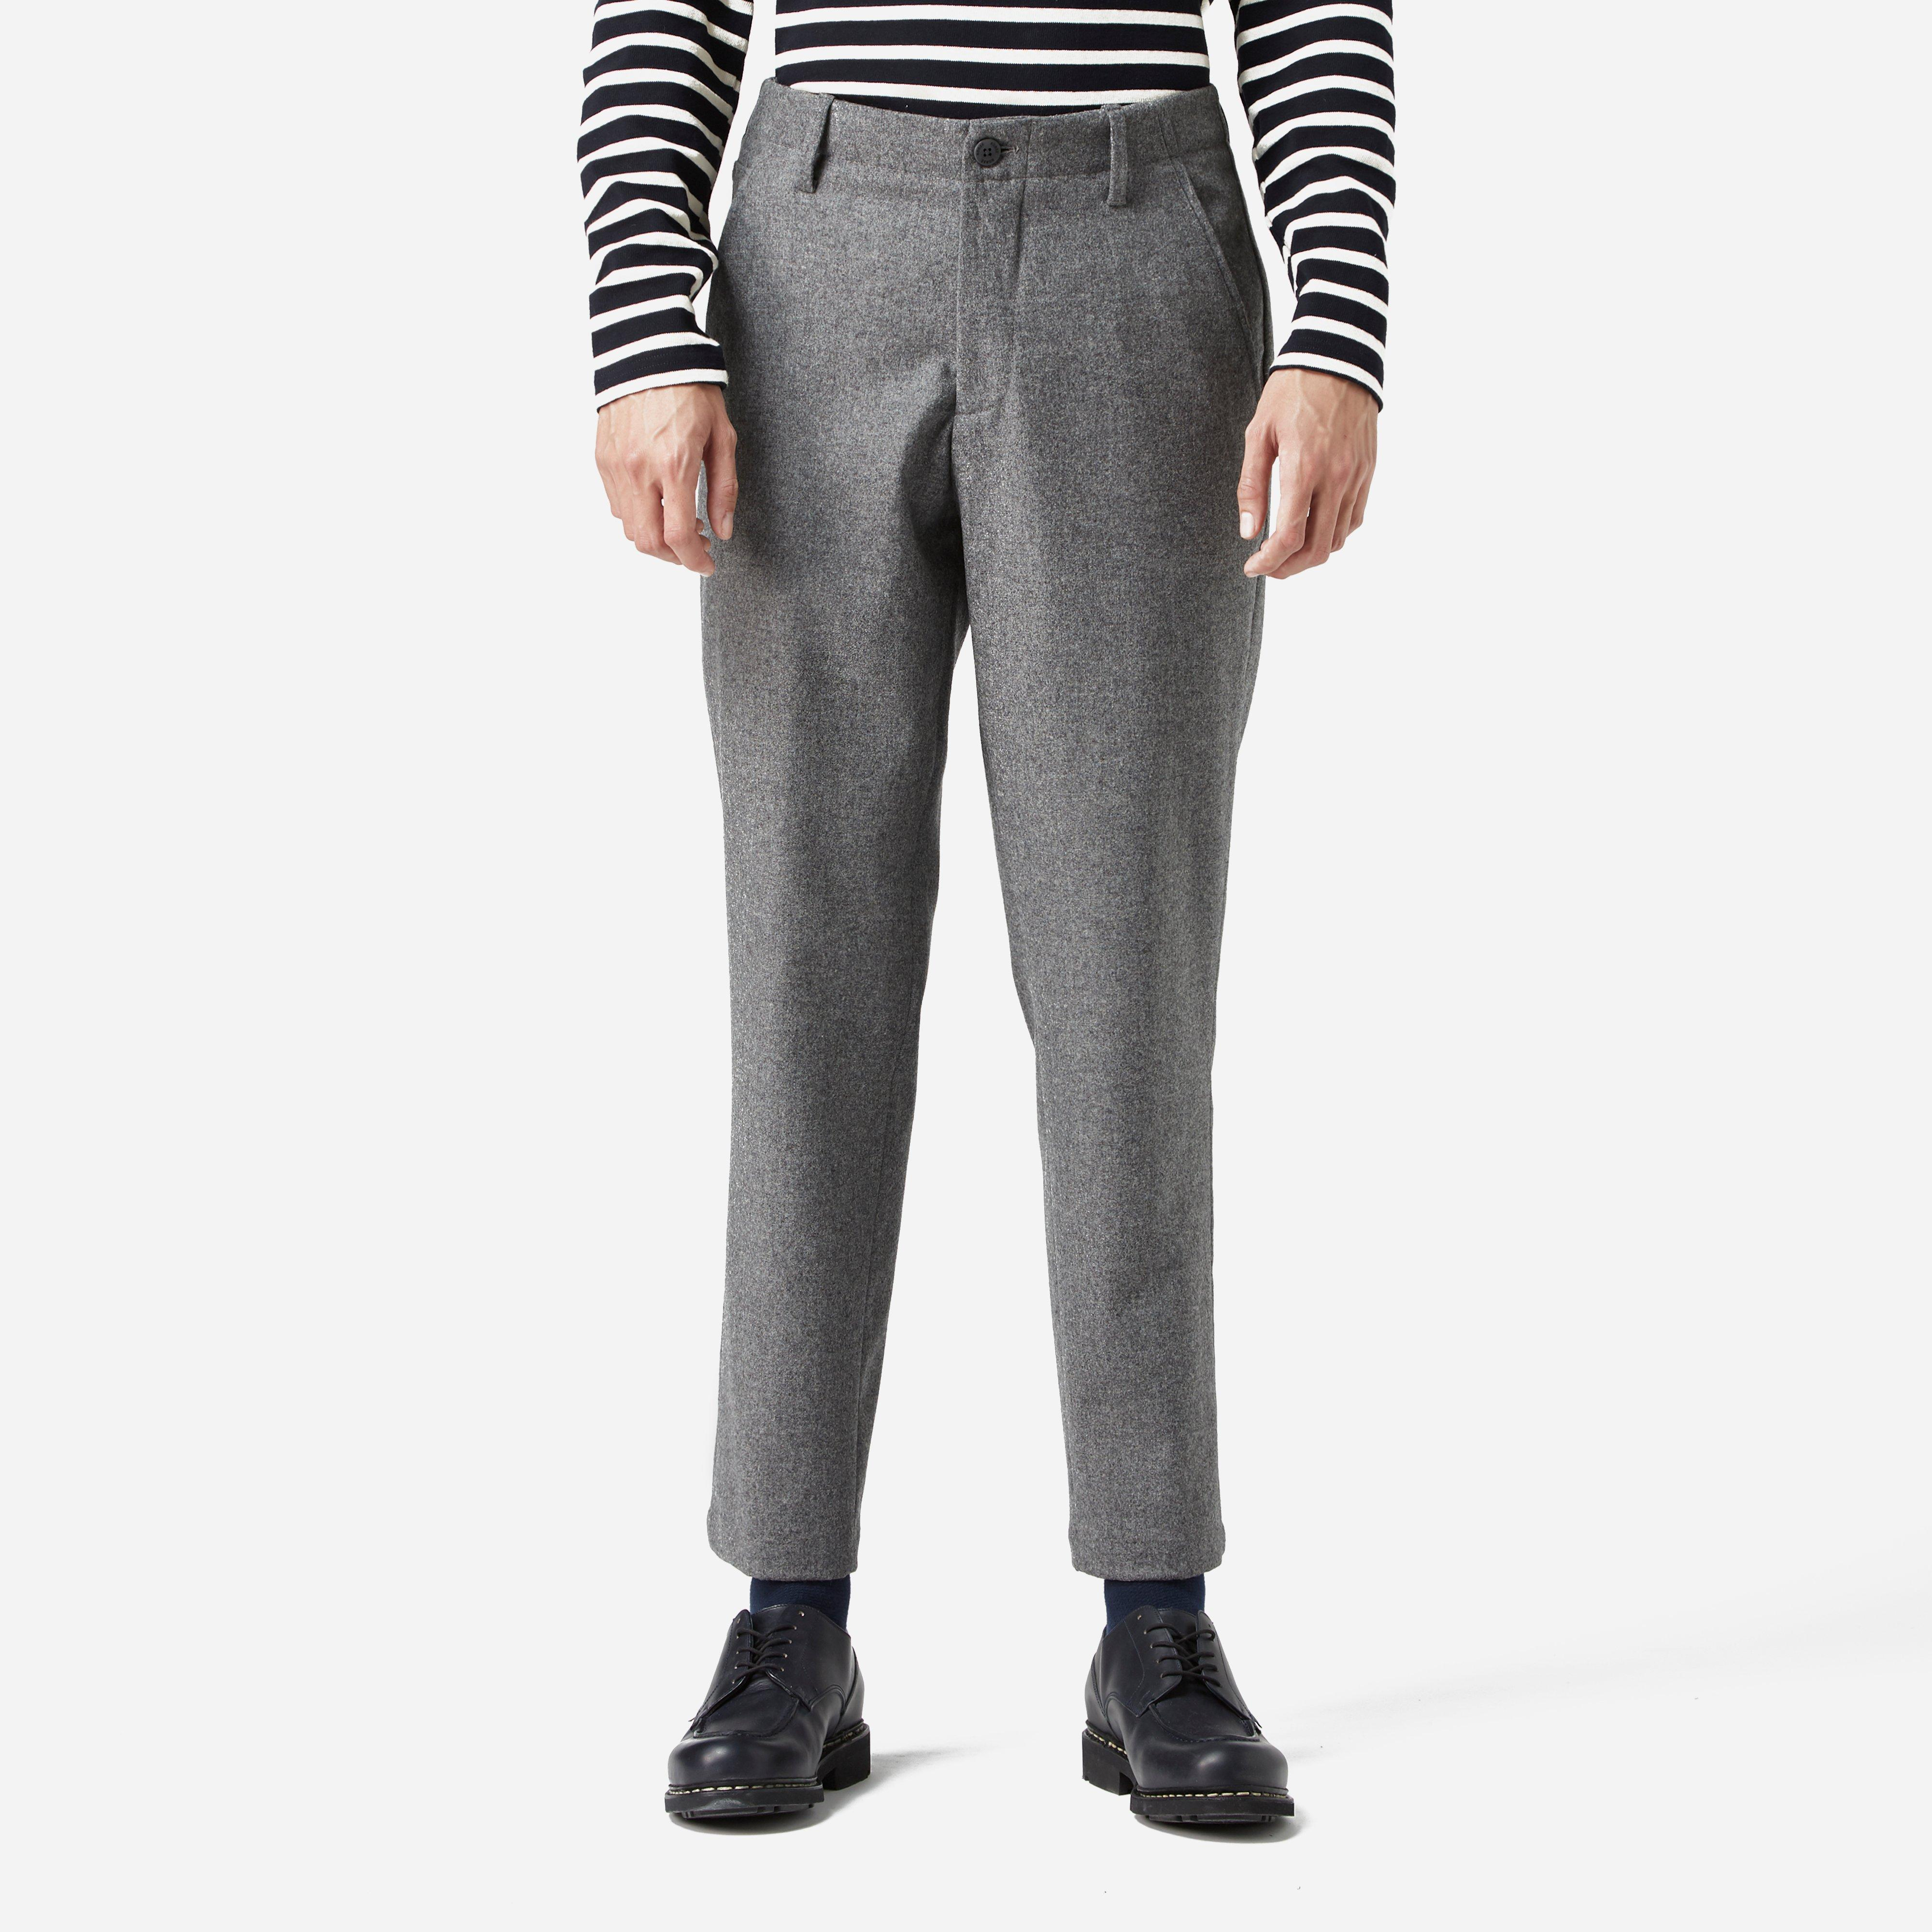 84245a51960 Norse Projects Harri Tapered Dry Wool Nylon Pant in Gray - Lyst